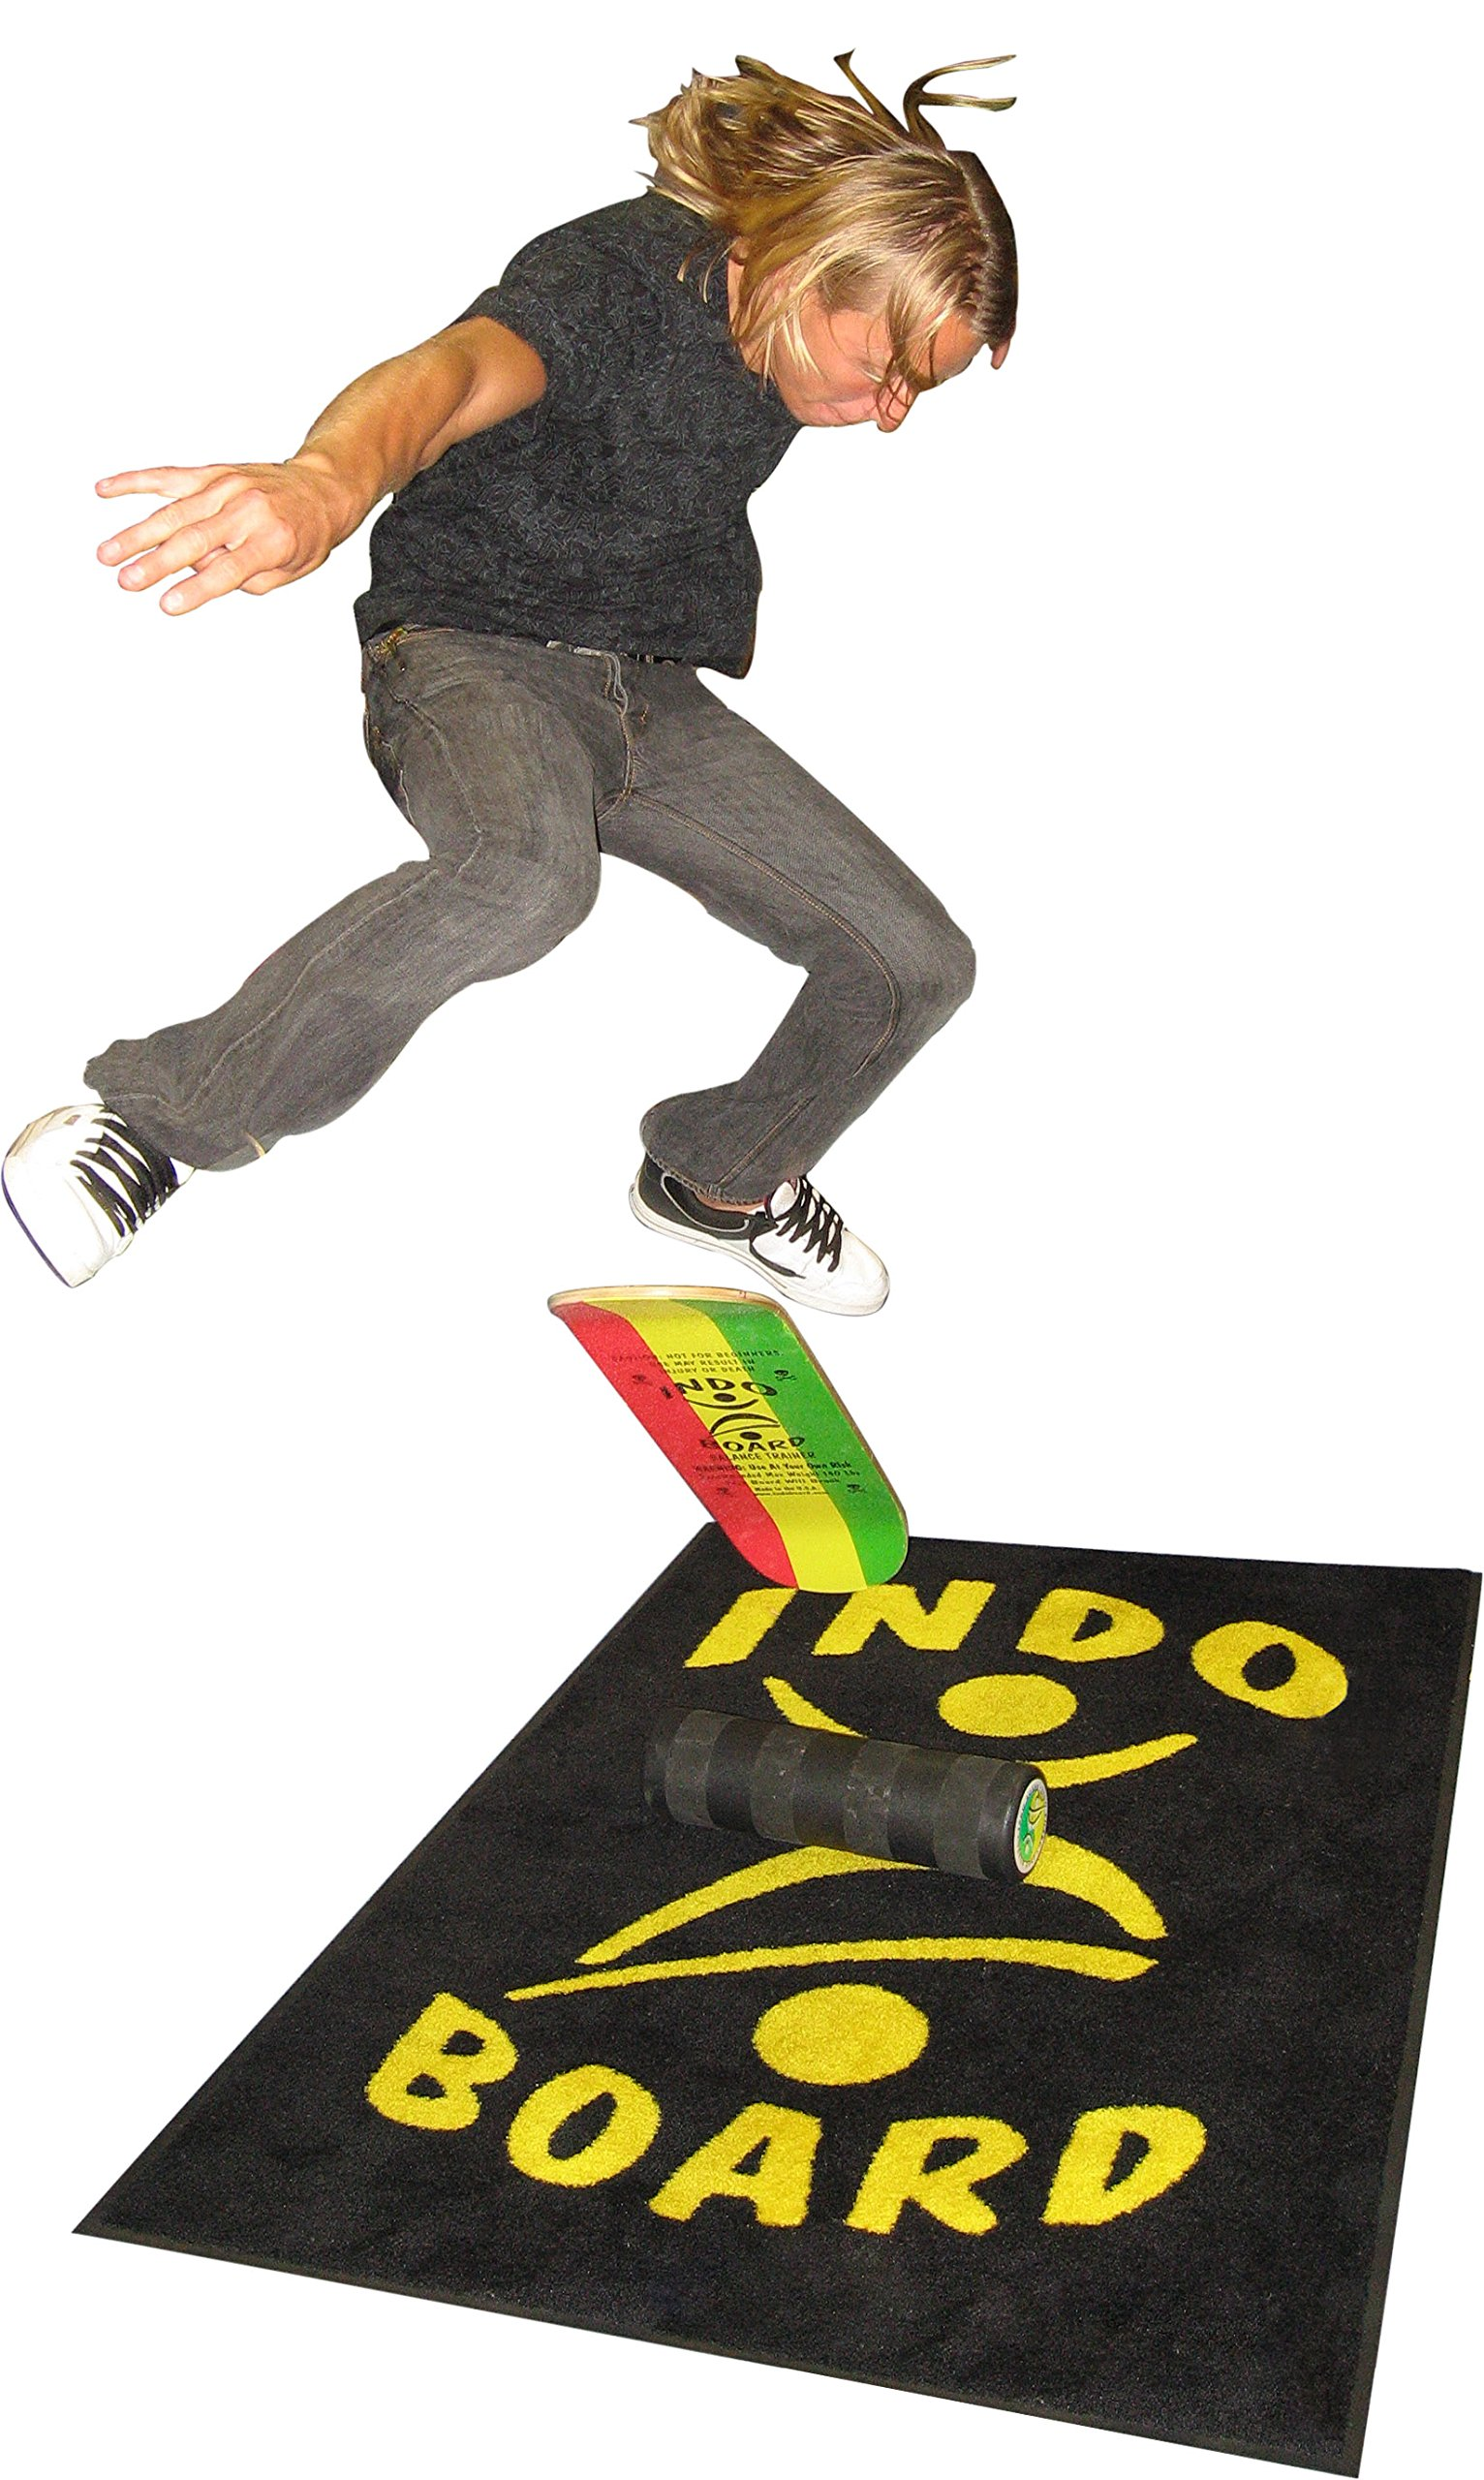 INDO BOARD Kicktail Pro Advanced Balance Board for Surfers, Skaters, Wakesurfers, Snowboarders - 39'' Long Deck with 6.5'' Roller by INDO BOARD (Image #4)